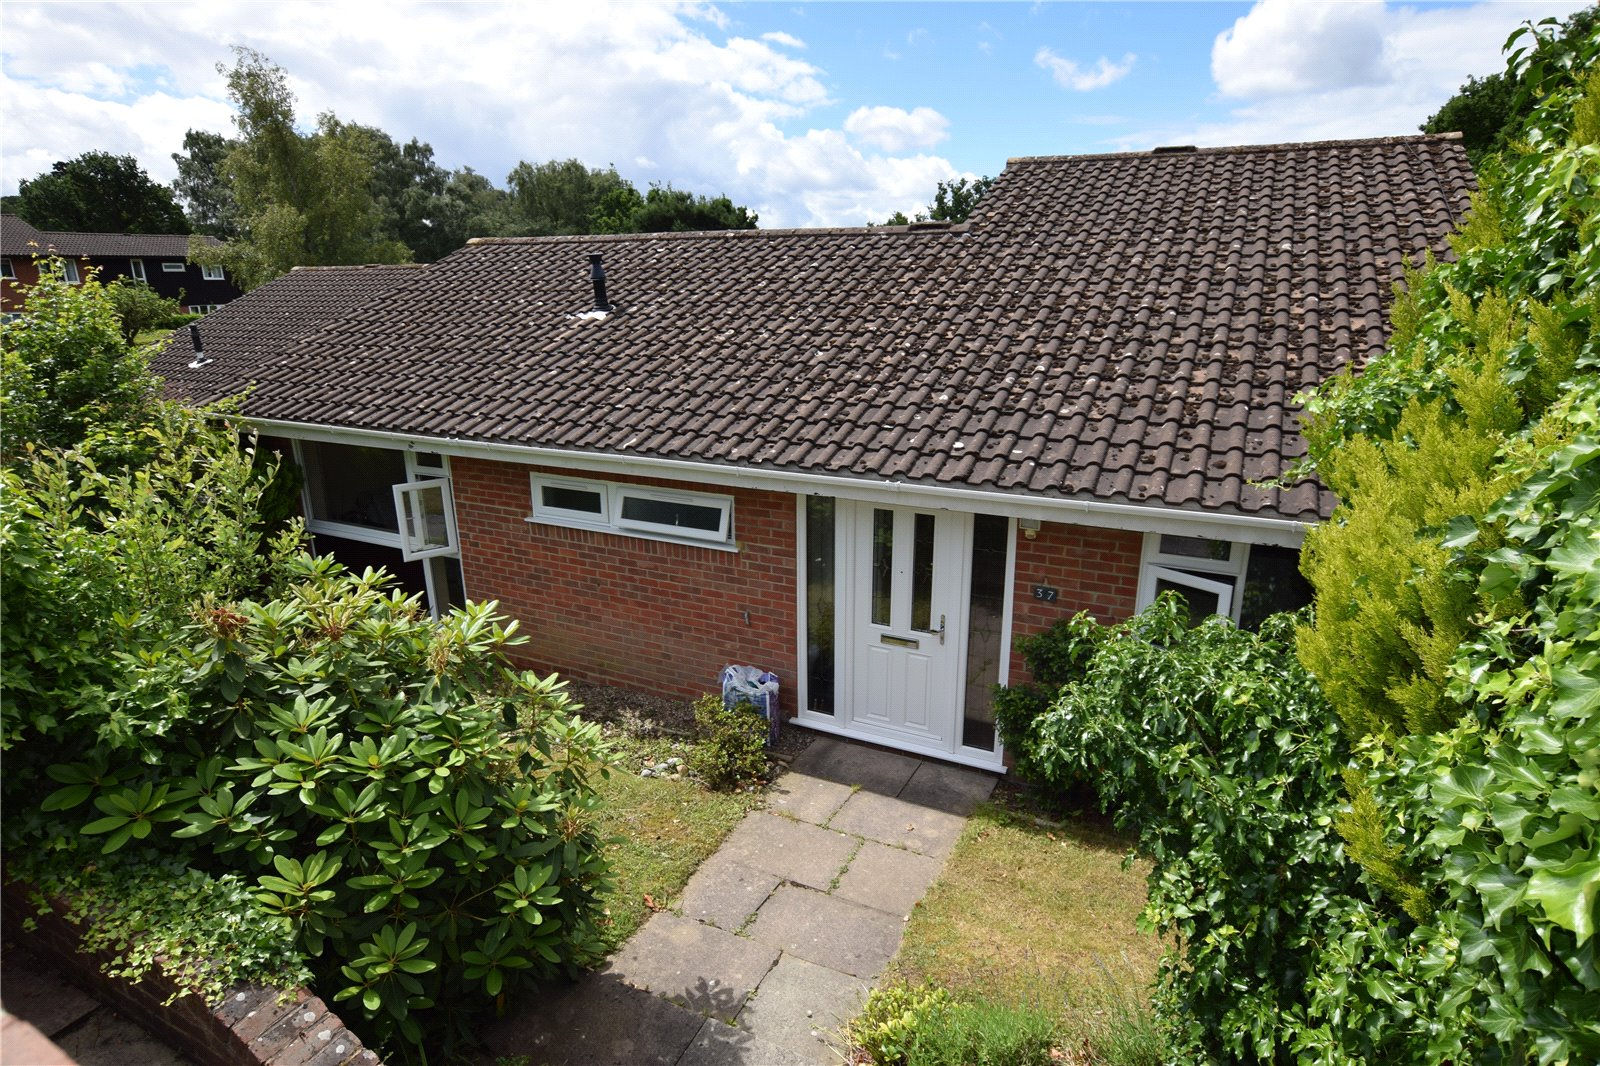 3 Bedrooms Bungalow for sale in Gainsborough, Bracknell, Berkshire, RG12